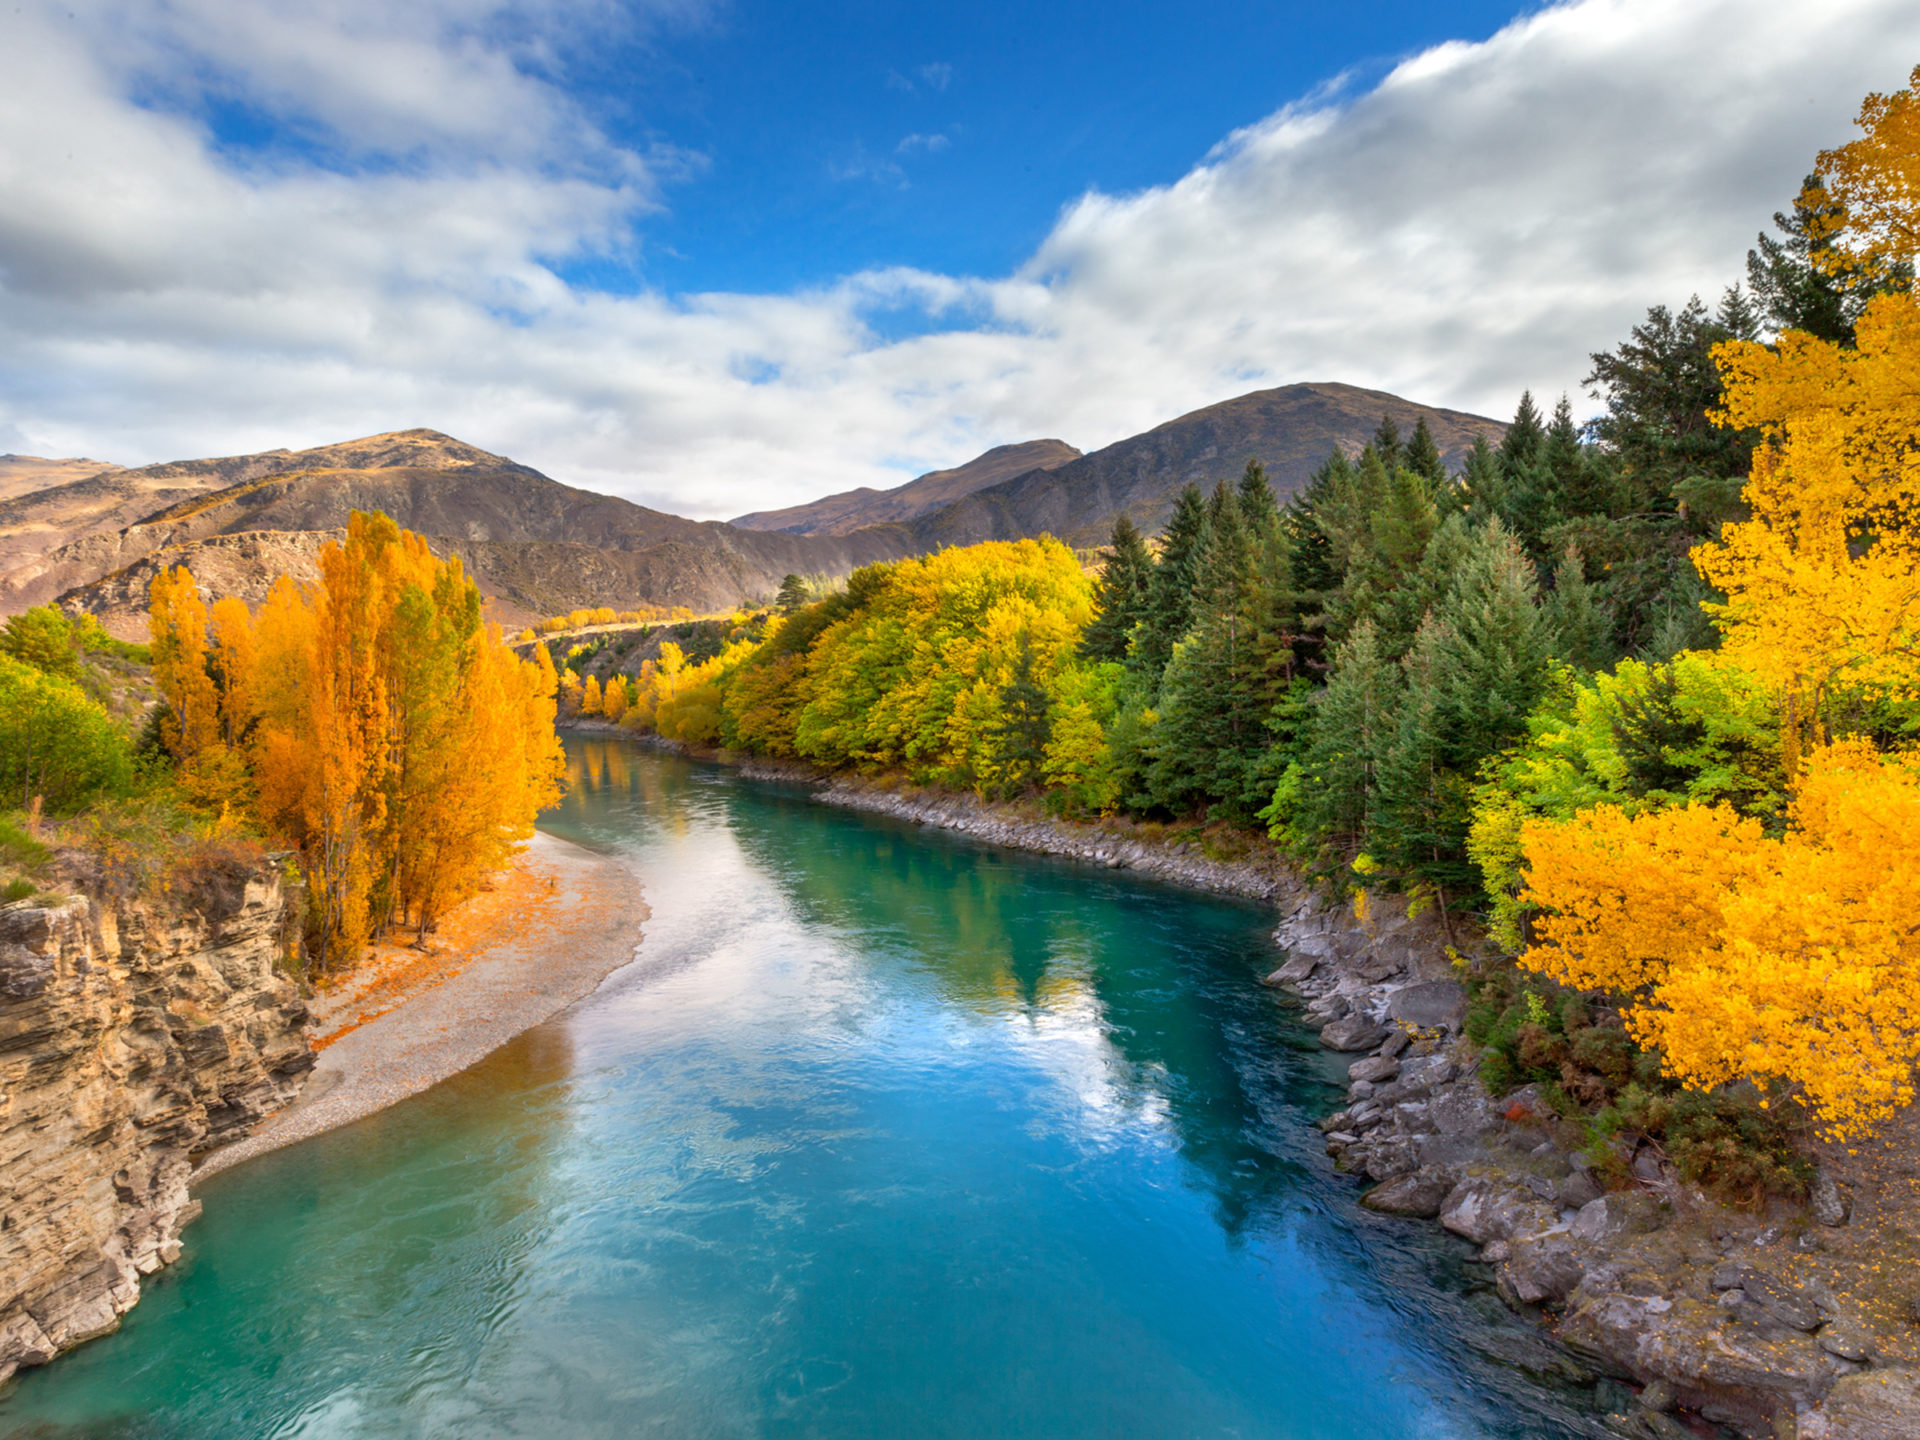 3d Landscape Wallpaper Download Landscape Wallpaper Hd Emerald River Queenstown New